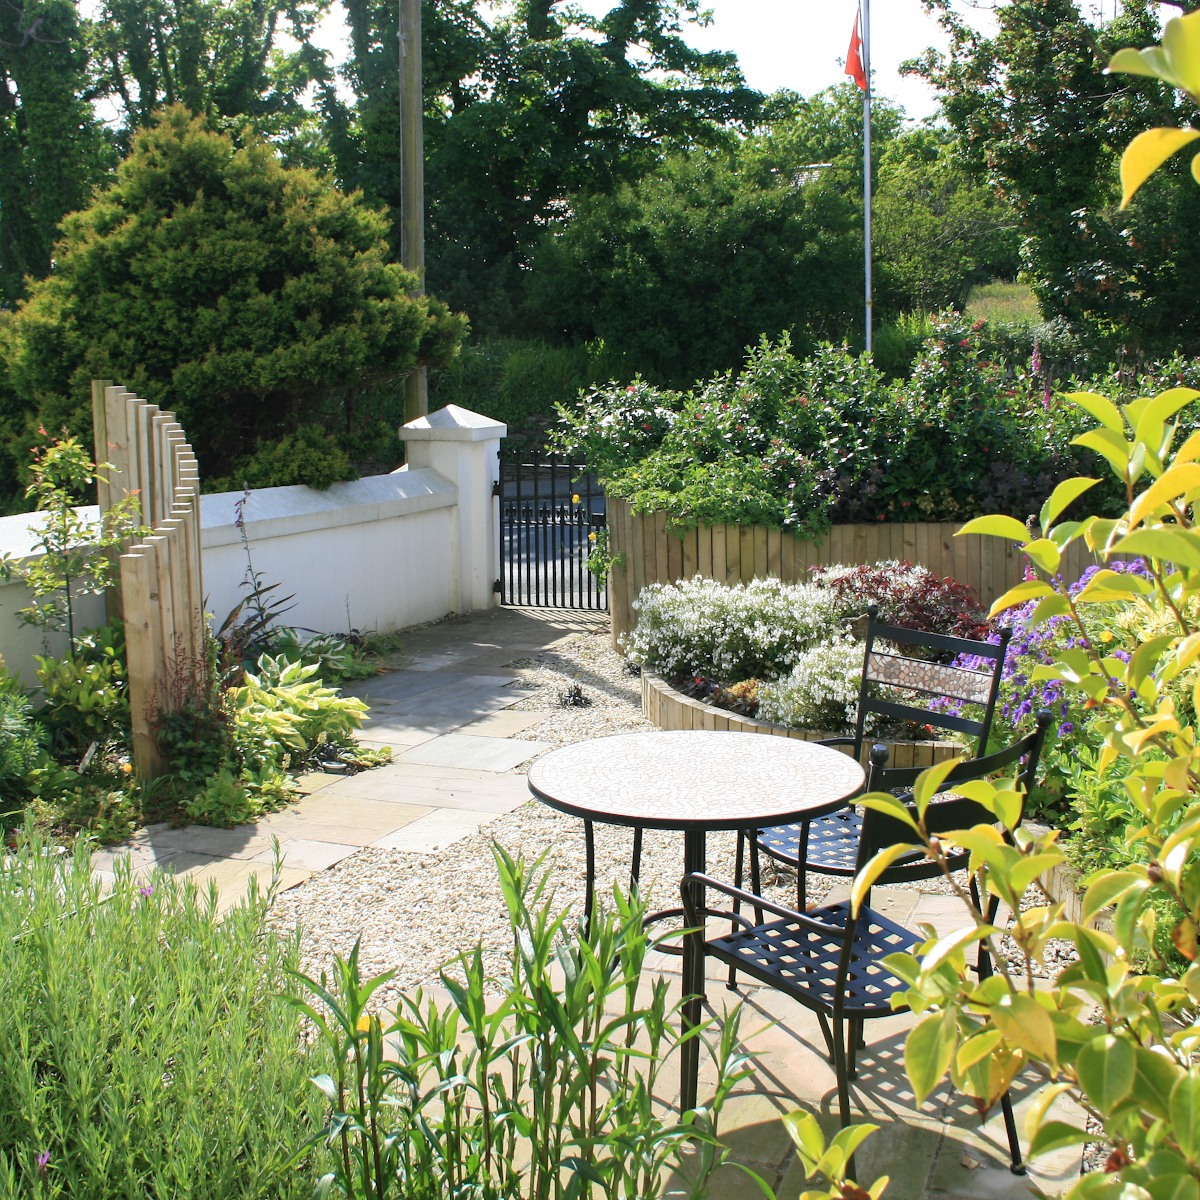 Summerhill Road garden design